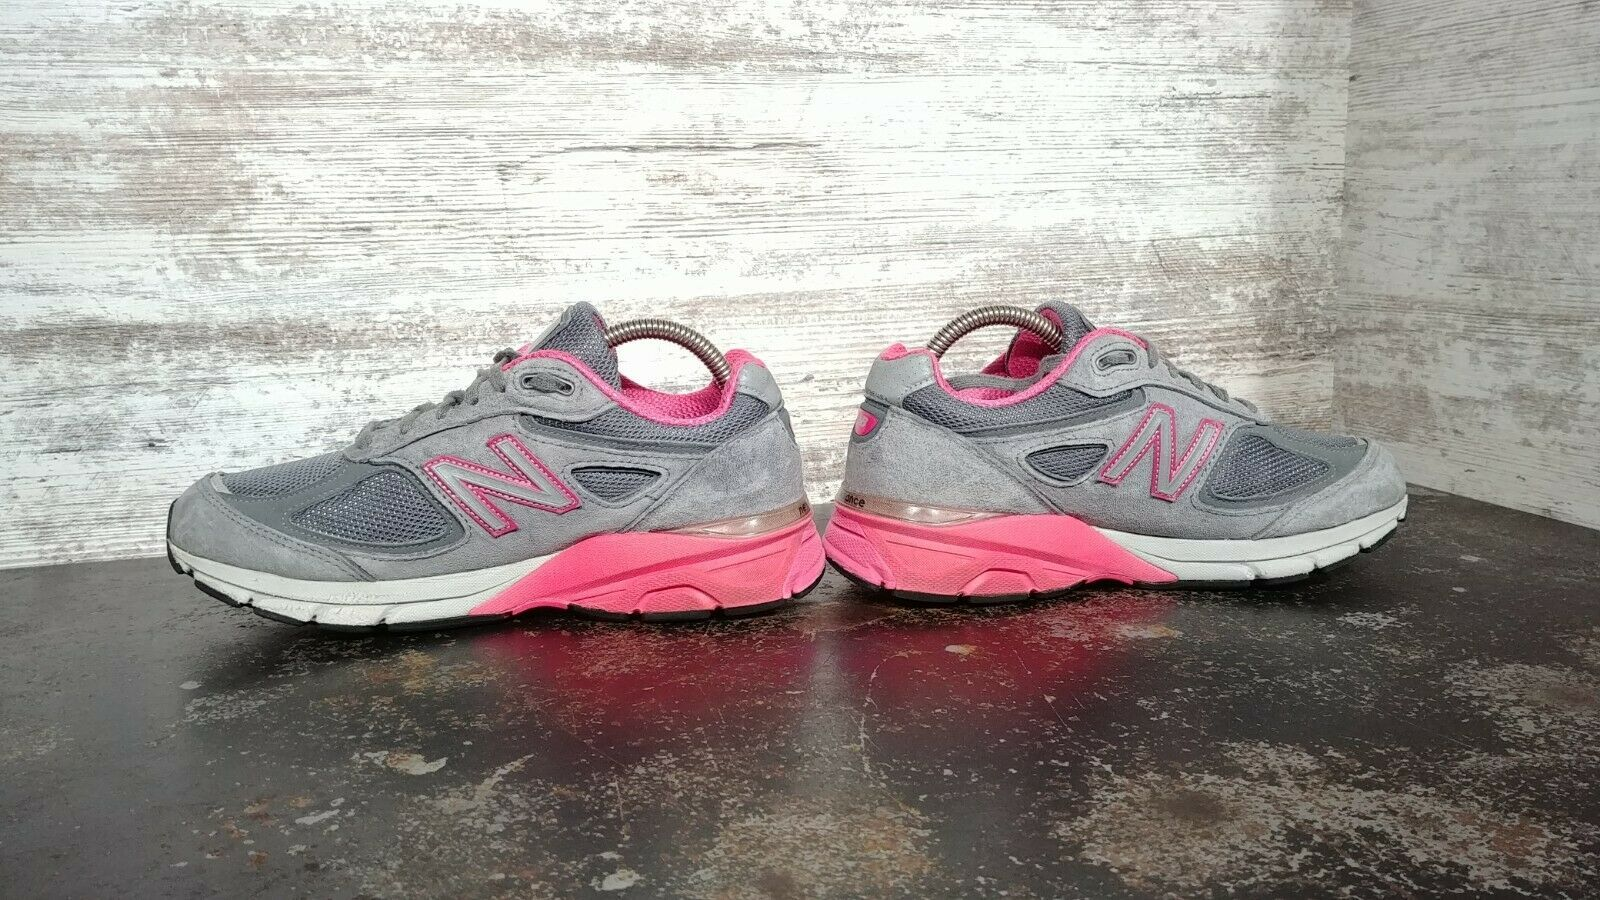 Womens New Balance 990 V3 Running Shoes SZ 7 D Wide Used Sneakers Trainers image 5